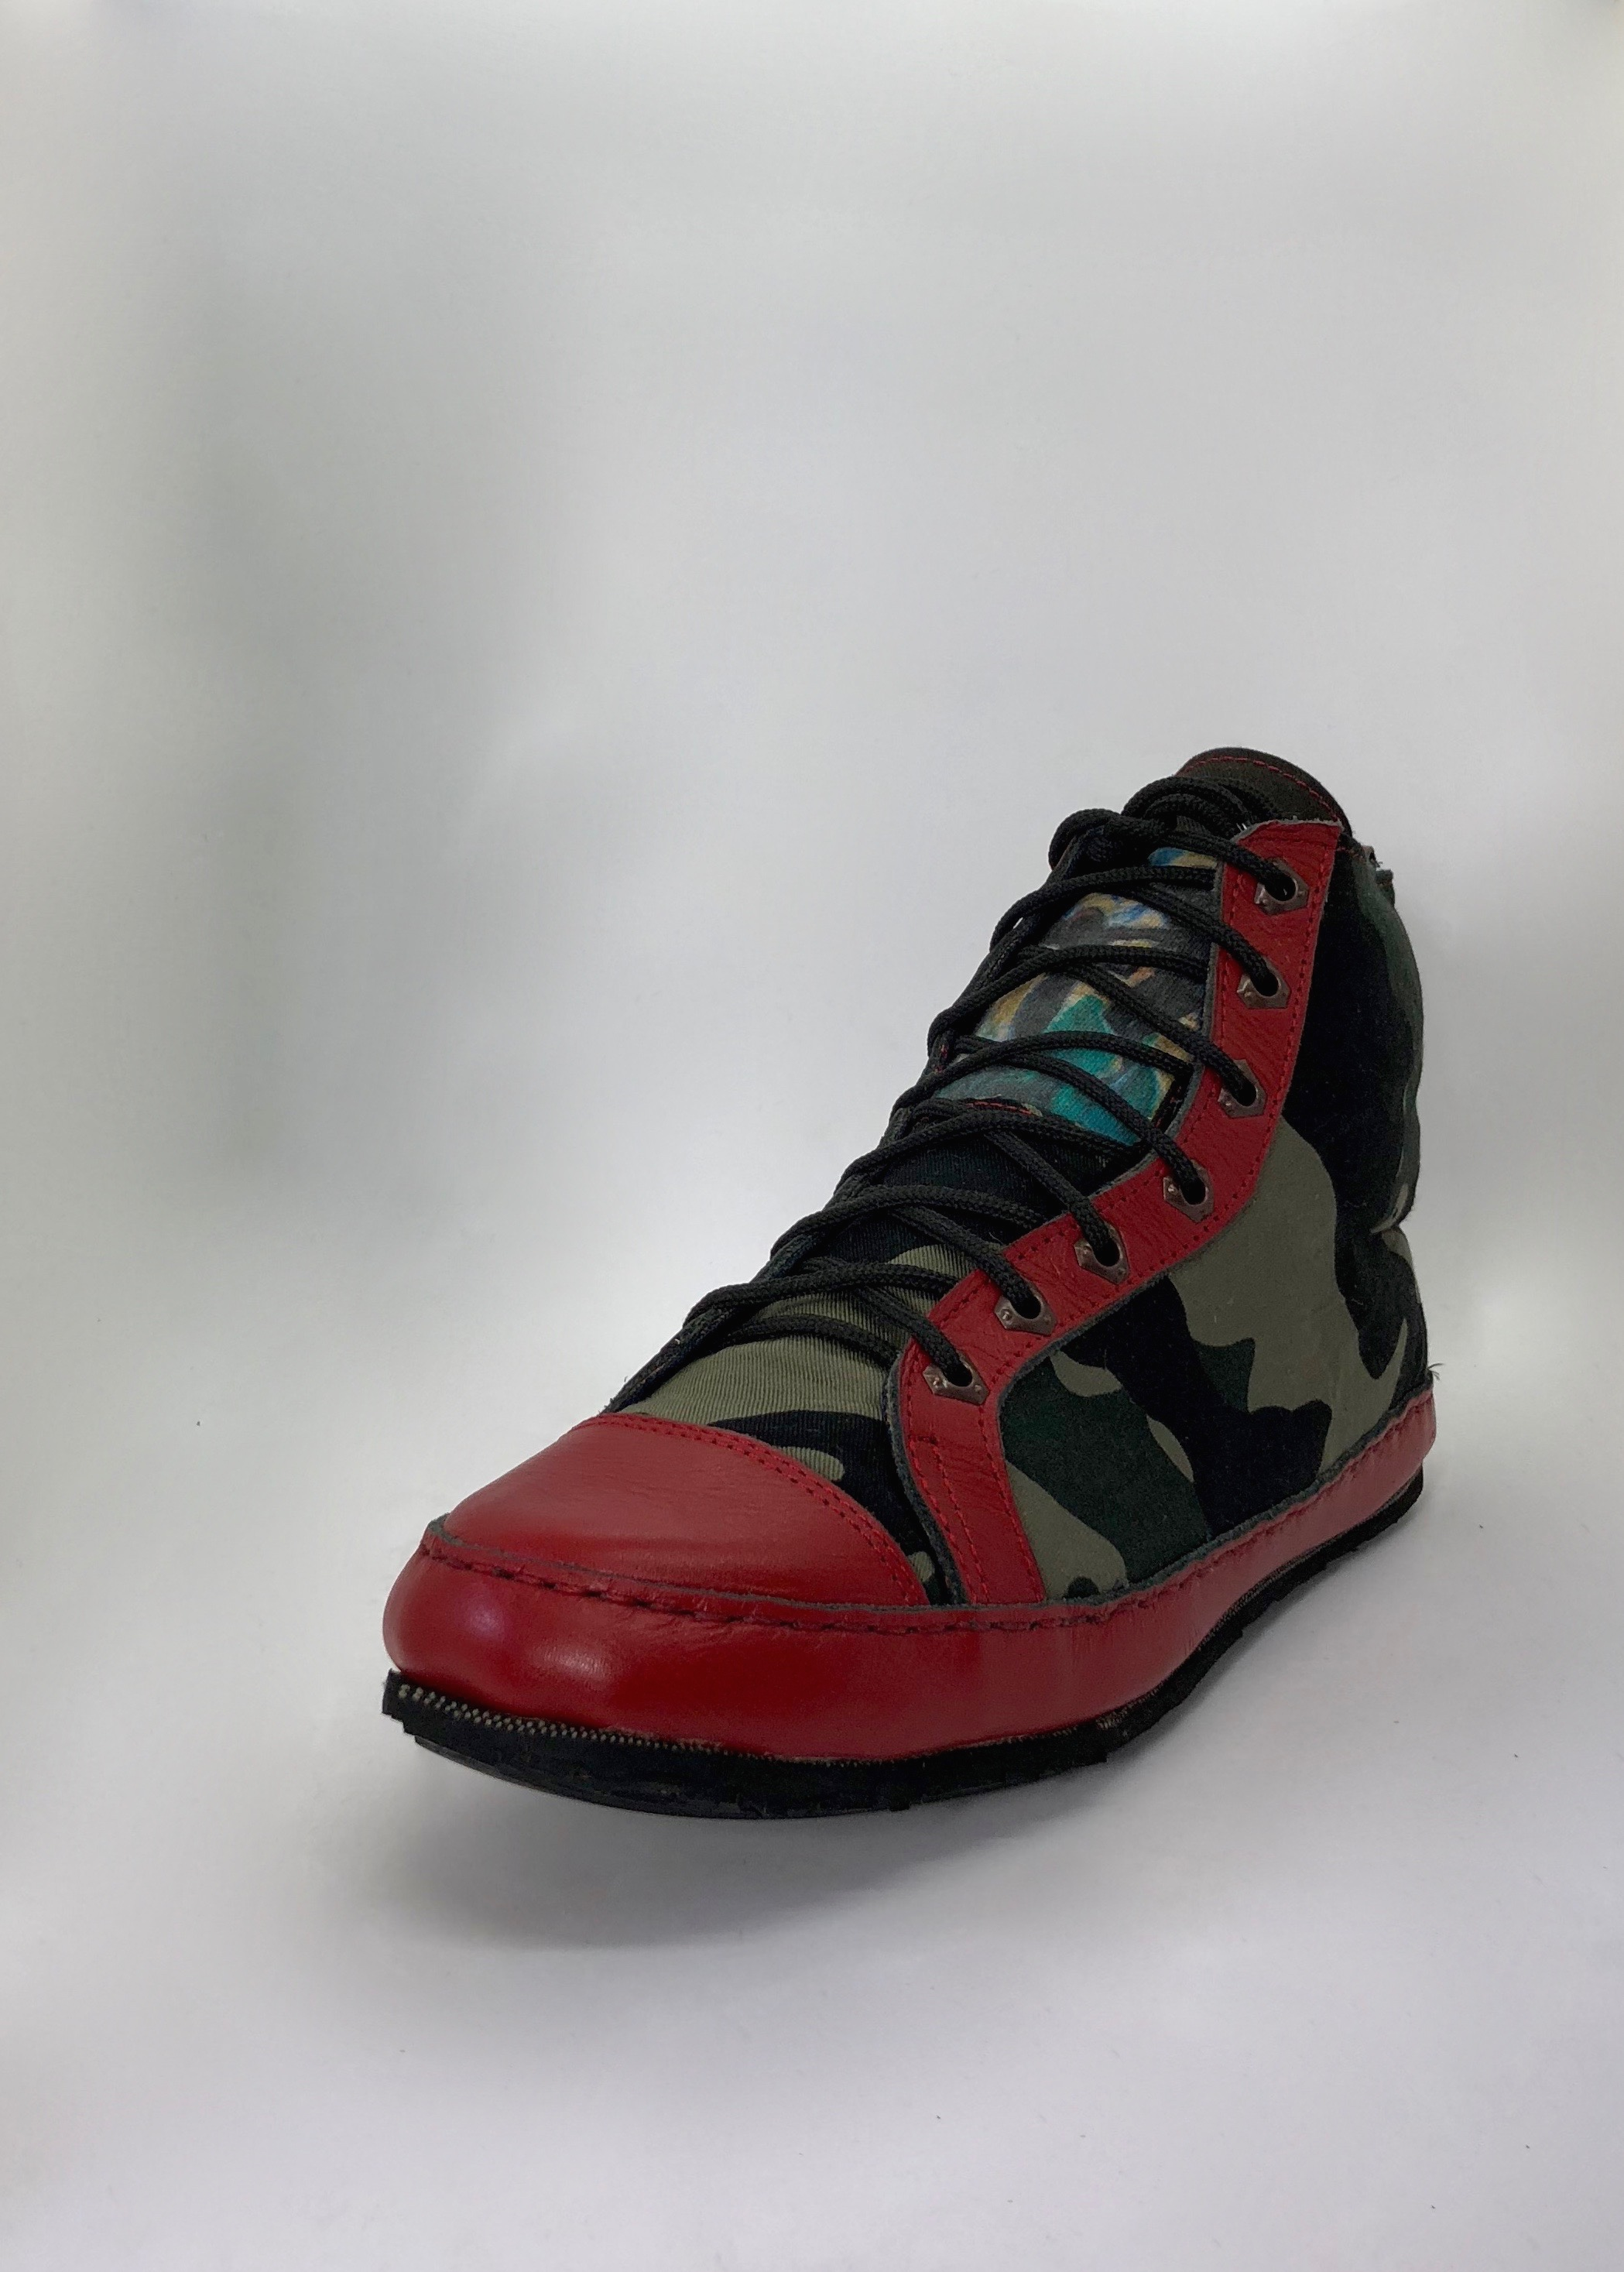 eARTh CAMOUFLAGE Sneakers - THE SHOE OF MANY ELEMENTS